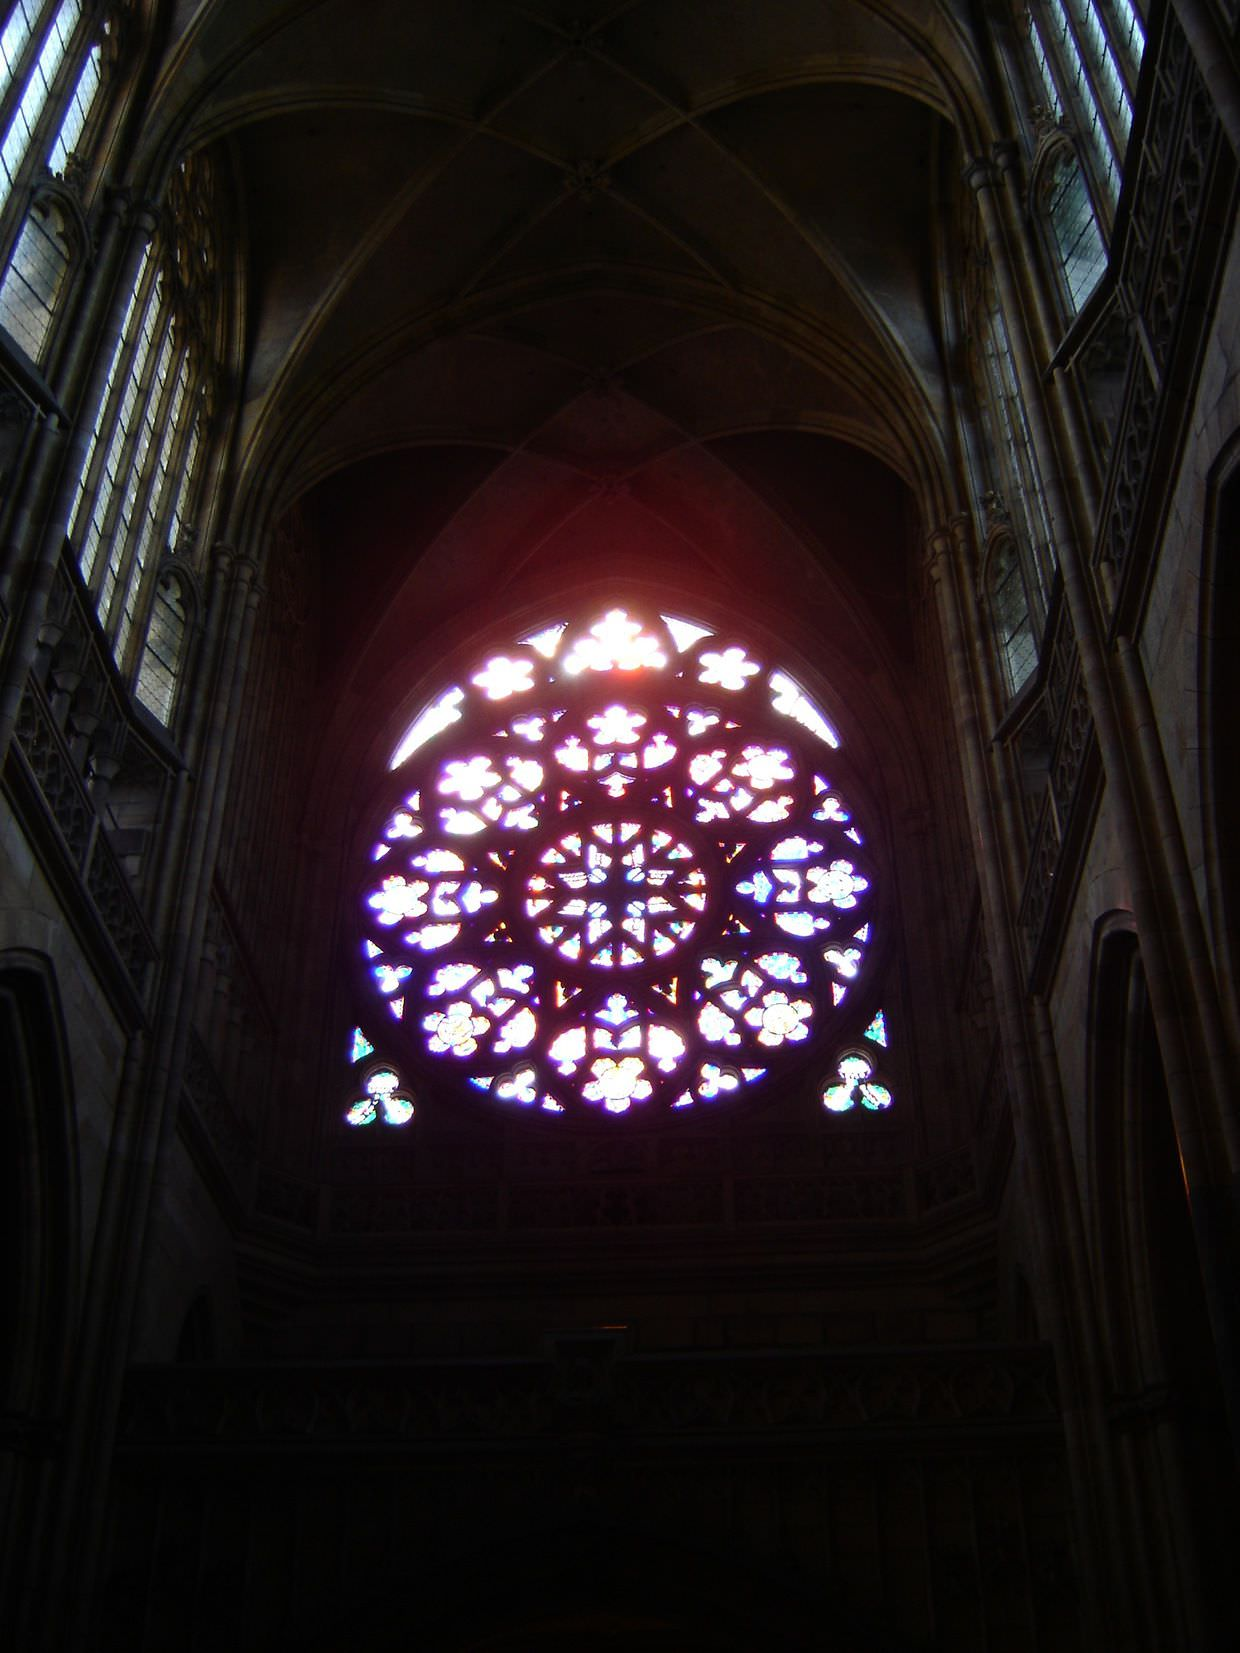 Stained glass window in Prague Cathedral